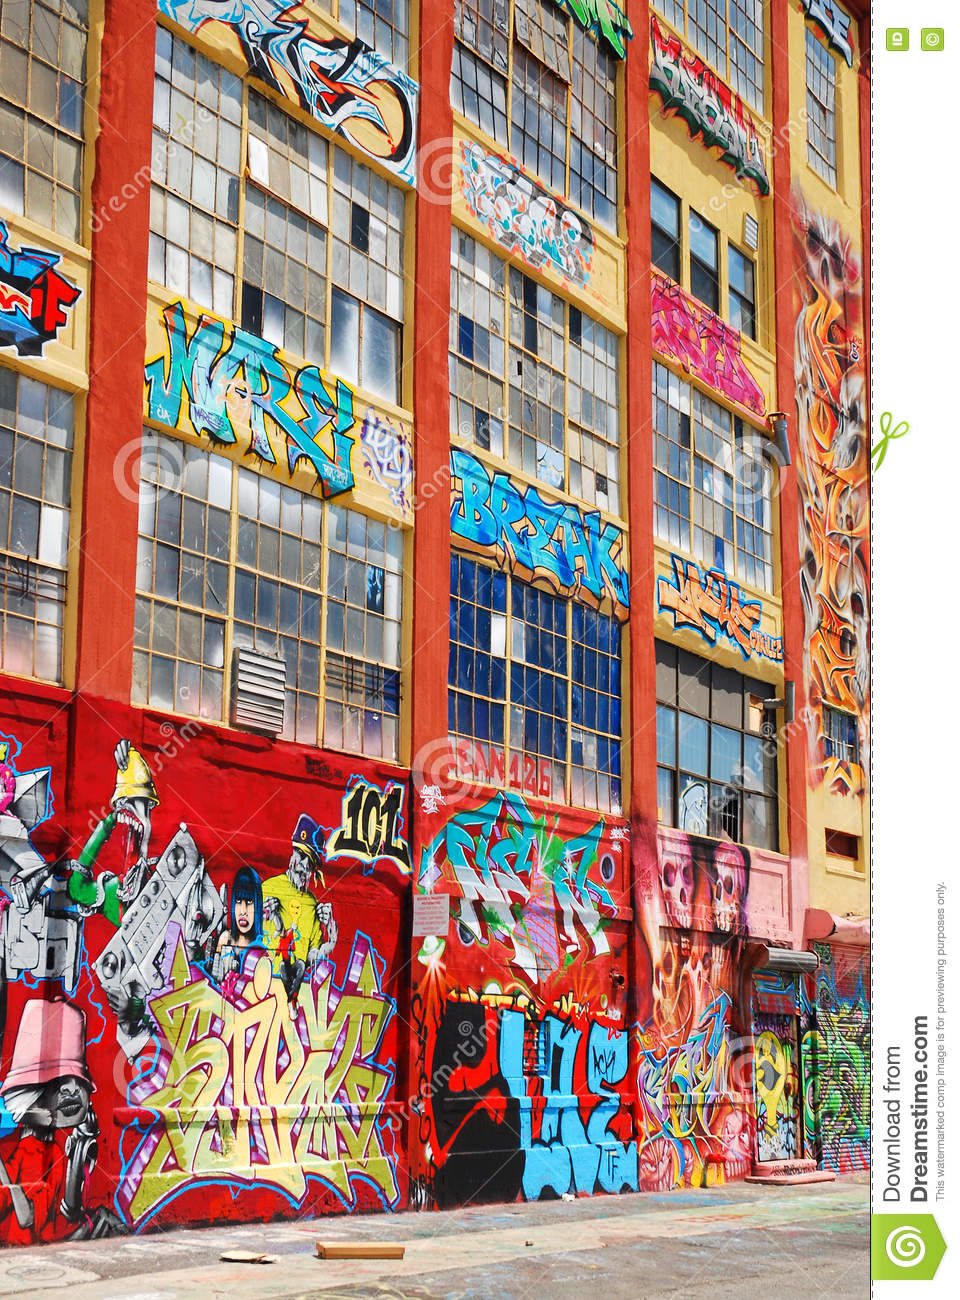 5 pointz was once the home to graffiti artists who were given a five story canvas to display their talents unfortunately the building was bought by a